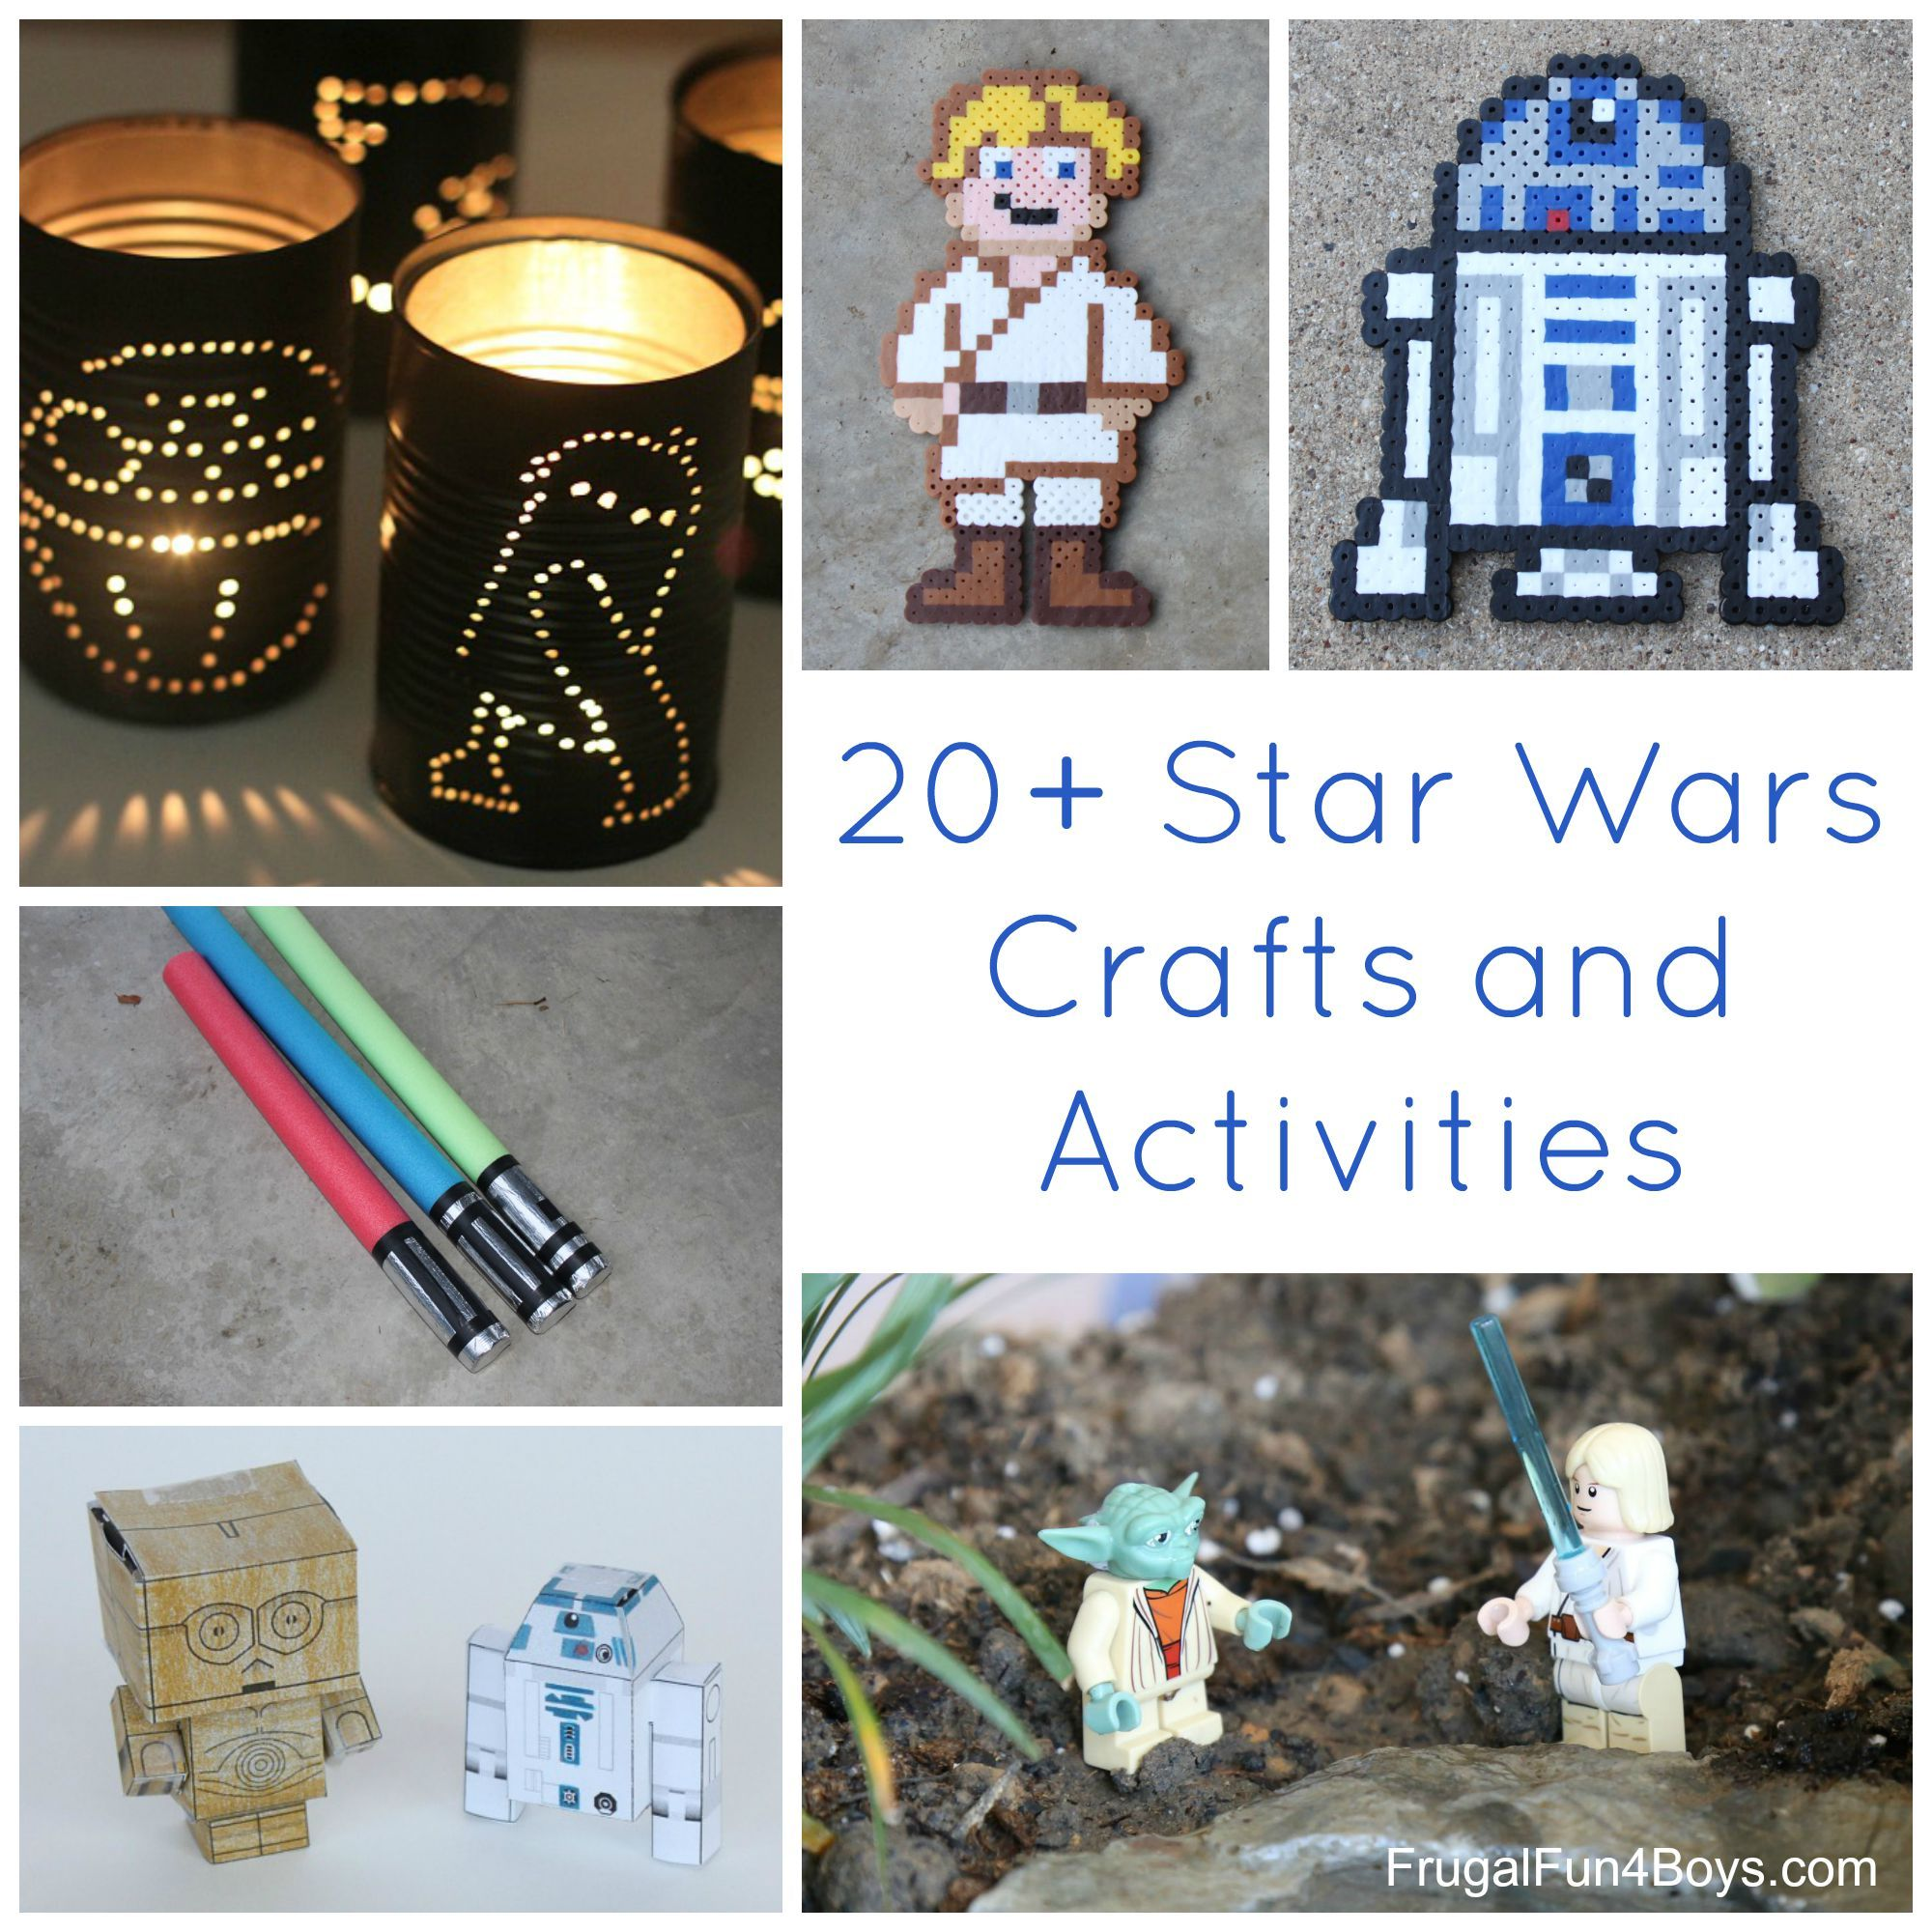 20+ Star Wars Crafts and Activities